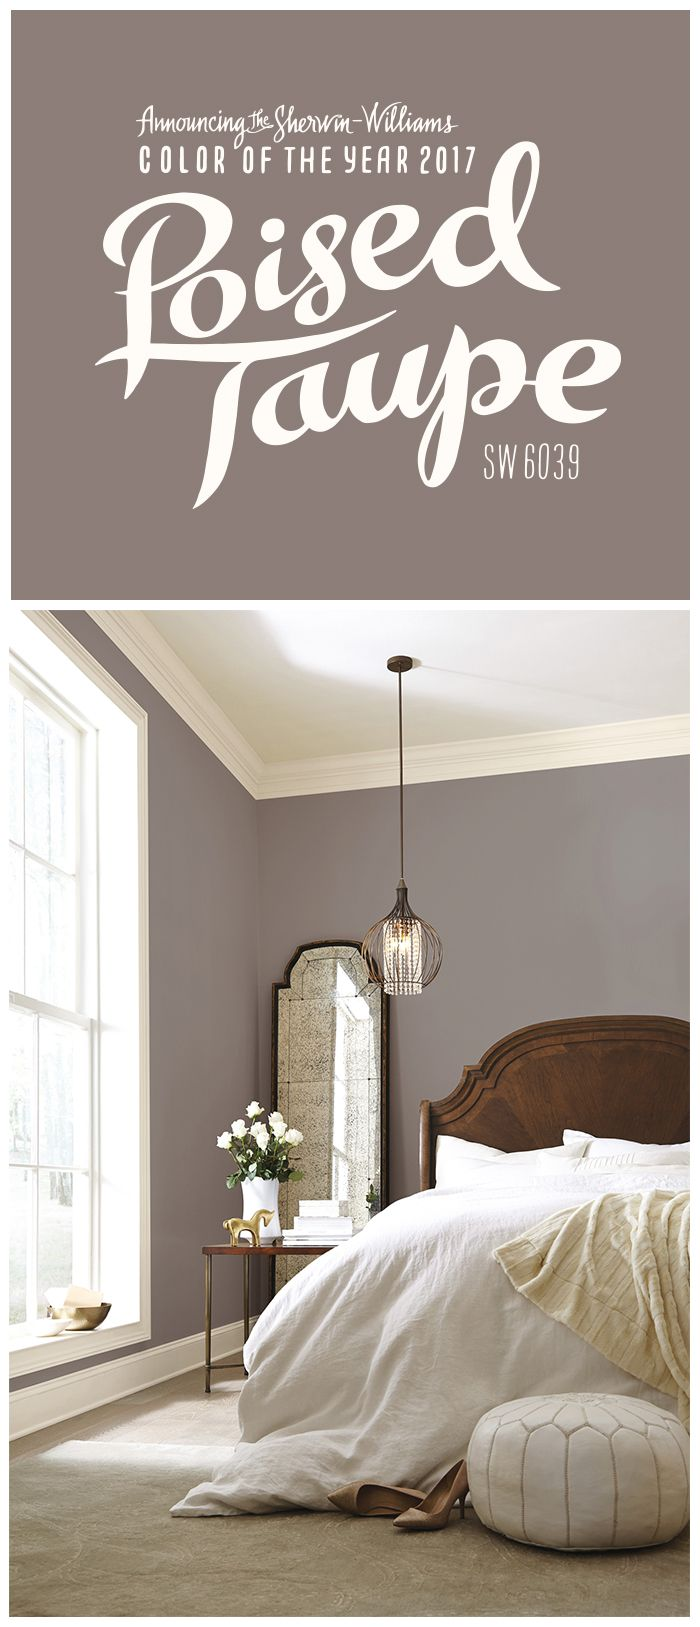 Brown wall colors for bedroom - We Re Thrilled About Our 2017 Color Of The Year Poised Taupe Sw 6039